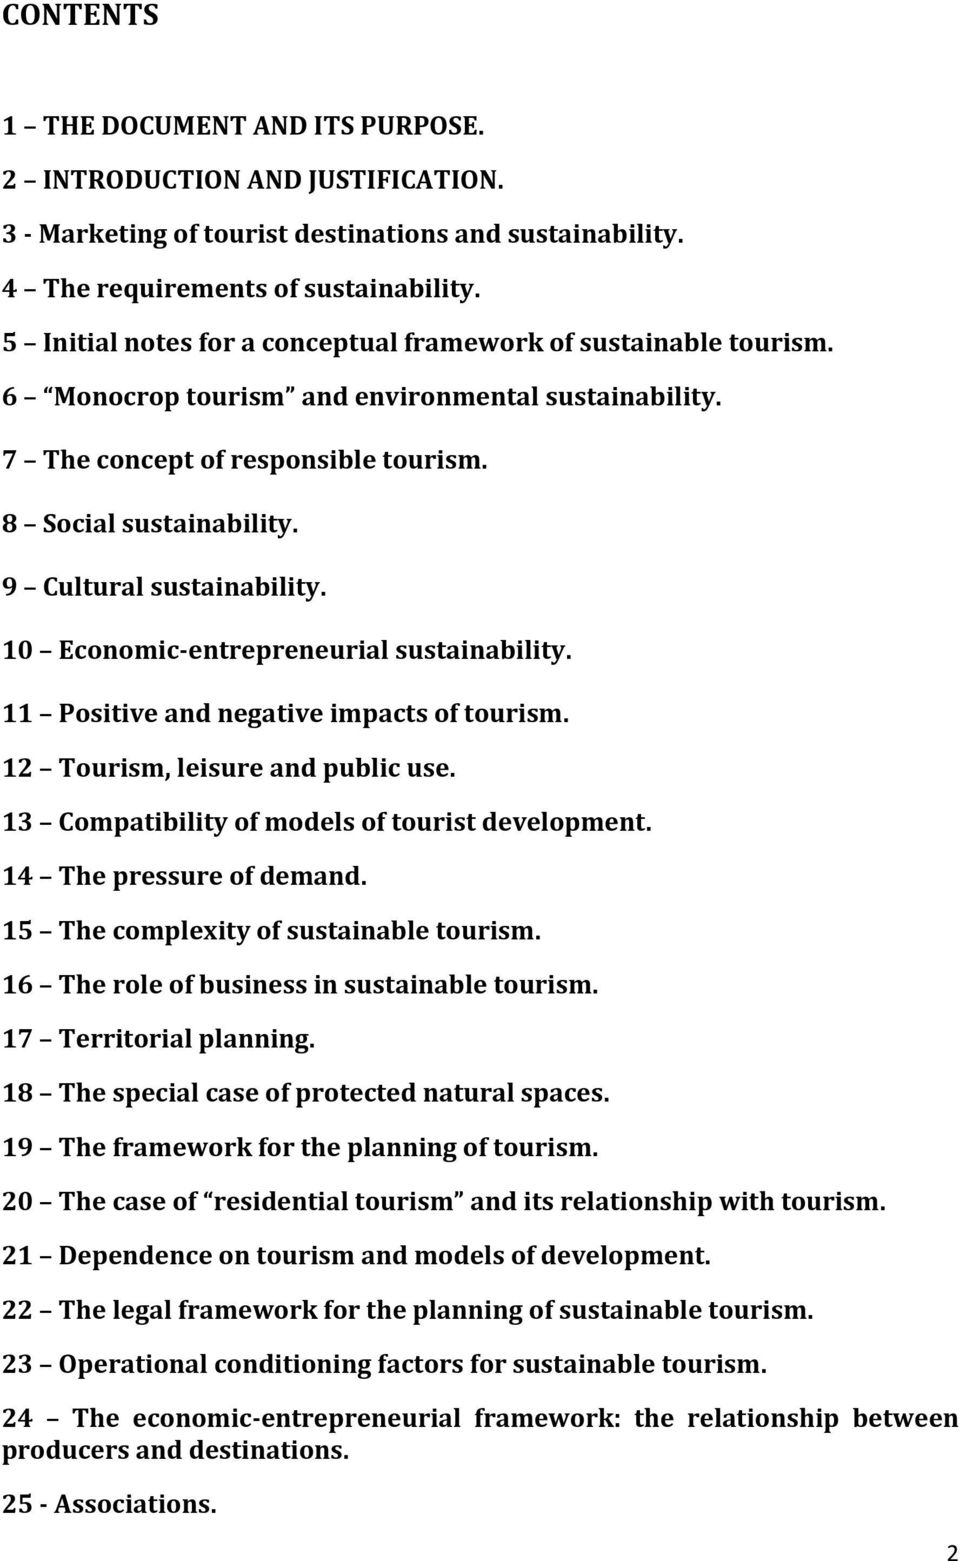 9 Cultural sustainability. 10 Economic-entrepreneurial sustainability. 11 Positive and negative impacts of tourism. 12 Tourism, leisure and public use.